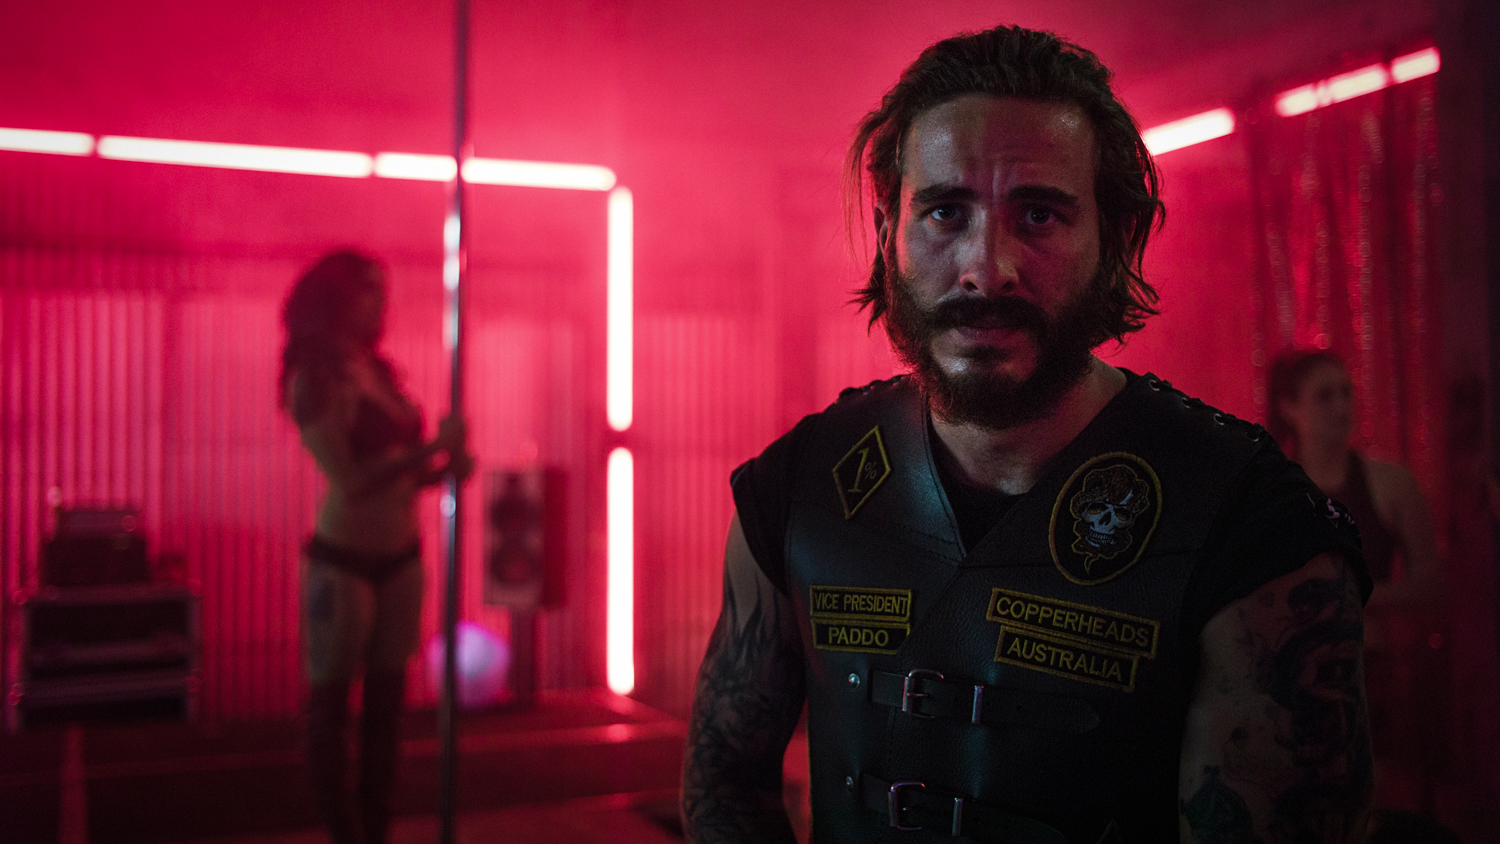 """http://www.tiff.net/tiff/1/    """"With skilled ferocity, first-time feature director Stephen McCallum injects the viewer into this explosive drama of Shakespearean proportions. McCallum, working off a script from Matt Nable, crafts a complex, classic story of power struggles within a motorcycle gang, exploring themes of fraternity, loyalty, and betrayal."""""""